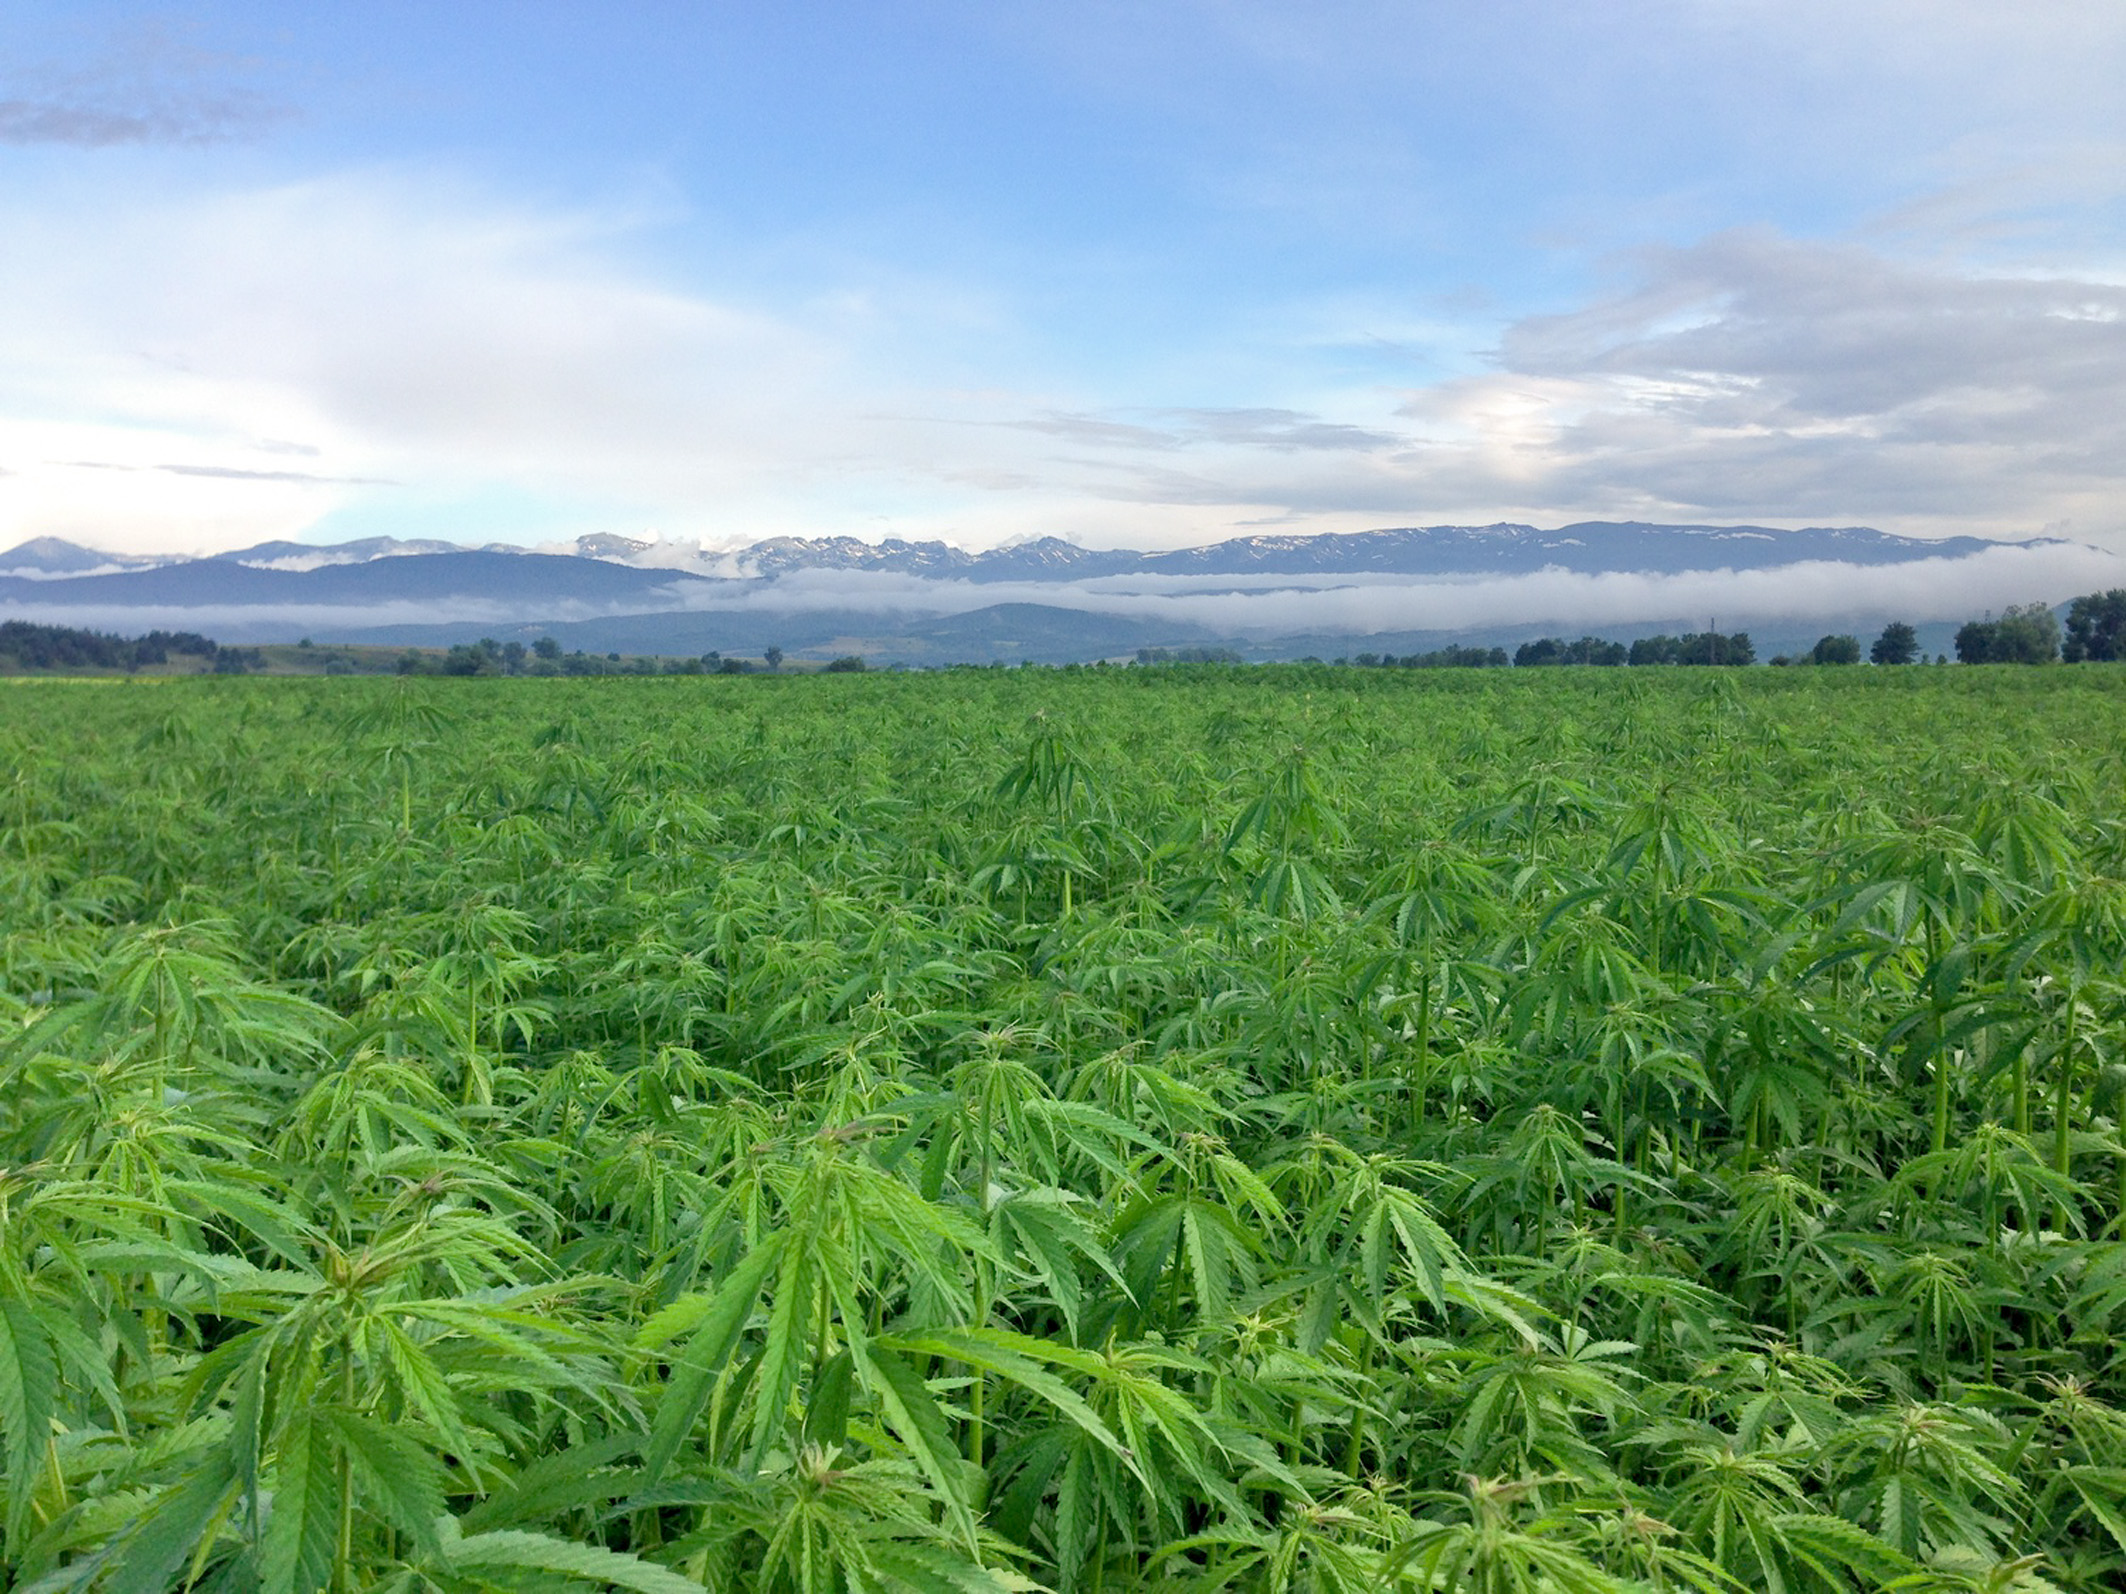 A field of hemp, which is about to become legal to sell as food.